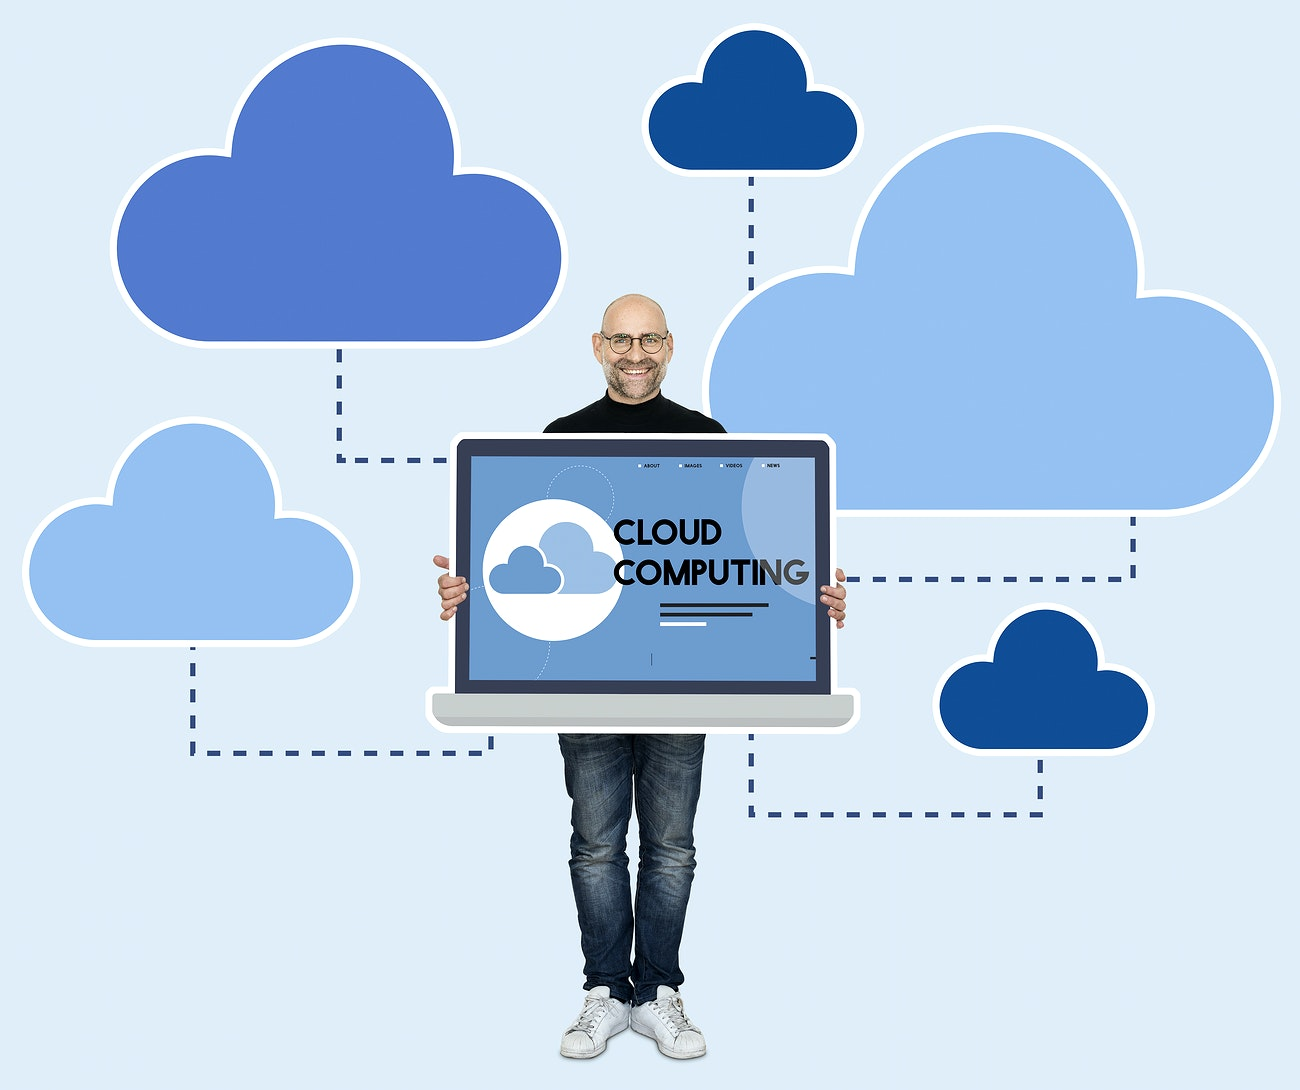 How To Make The Transition To A Cloud Career If You Don't Have Any Previous Experience?